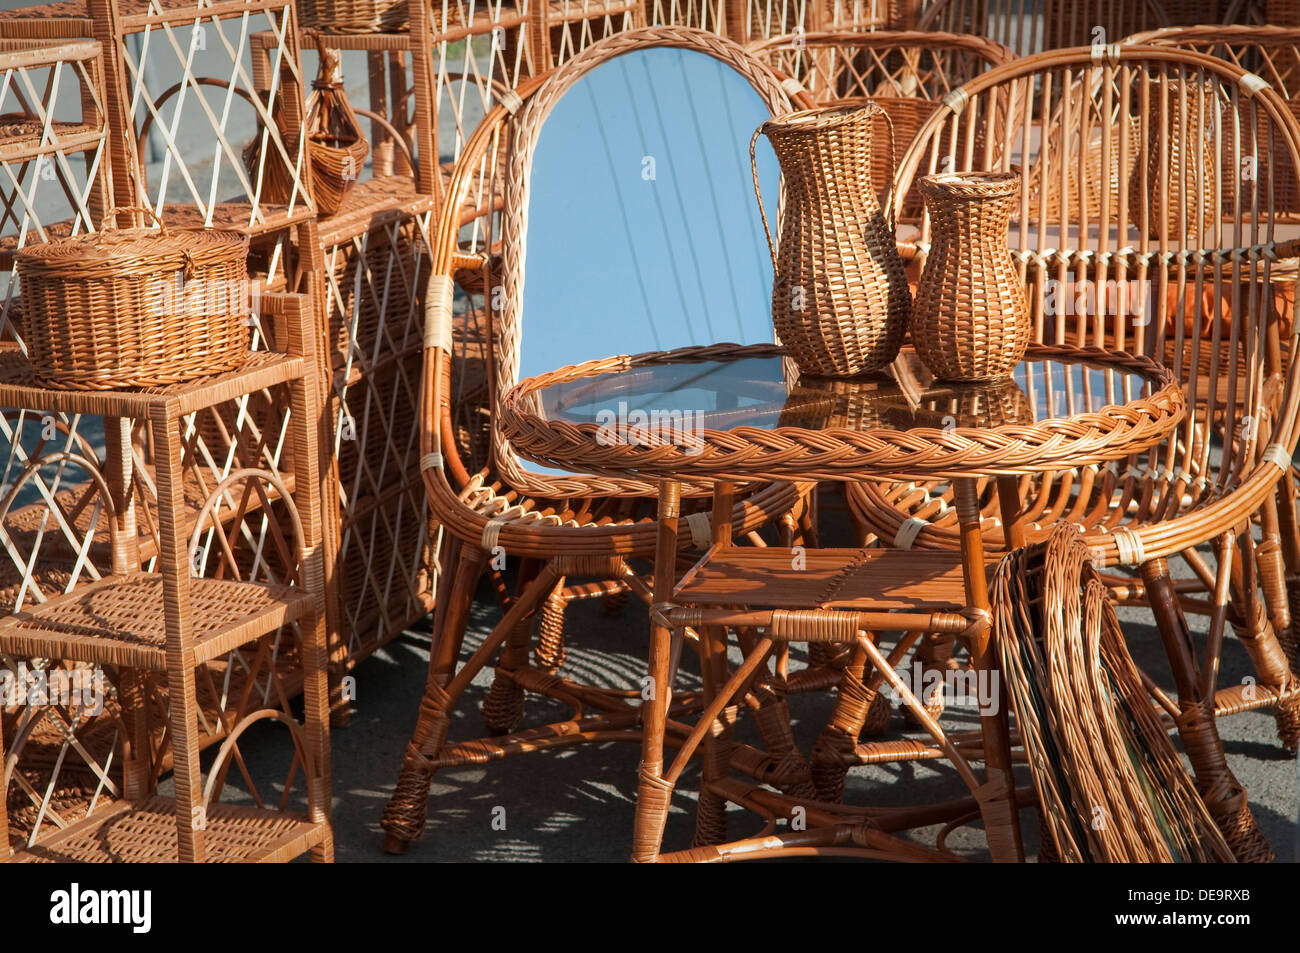 Bon Hand Made Wicker Furniture For Sale At Local Craft Fair In Wadowice,  Poland.